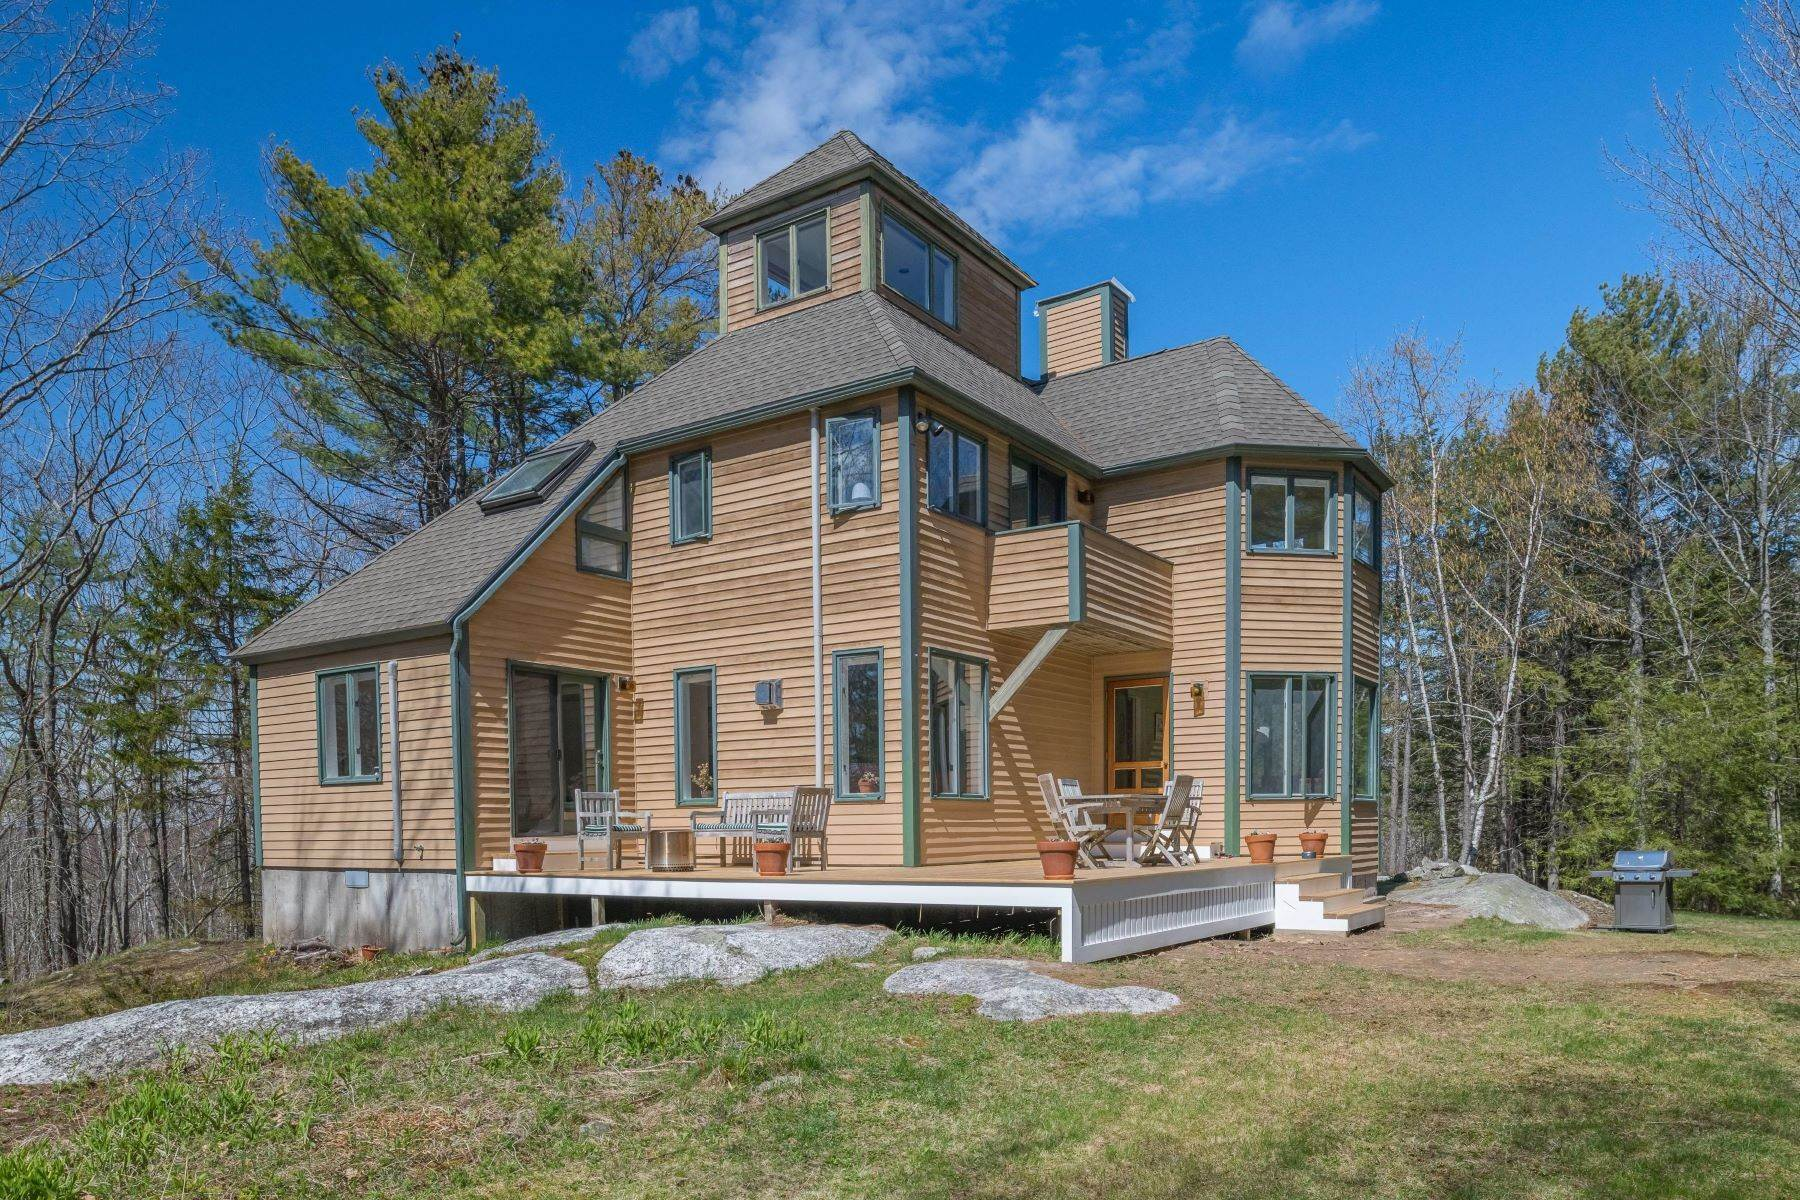 Single Family Homes for Sale at Freeport, ME 04032